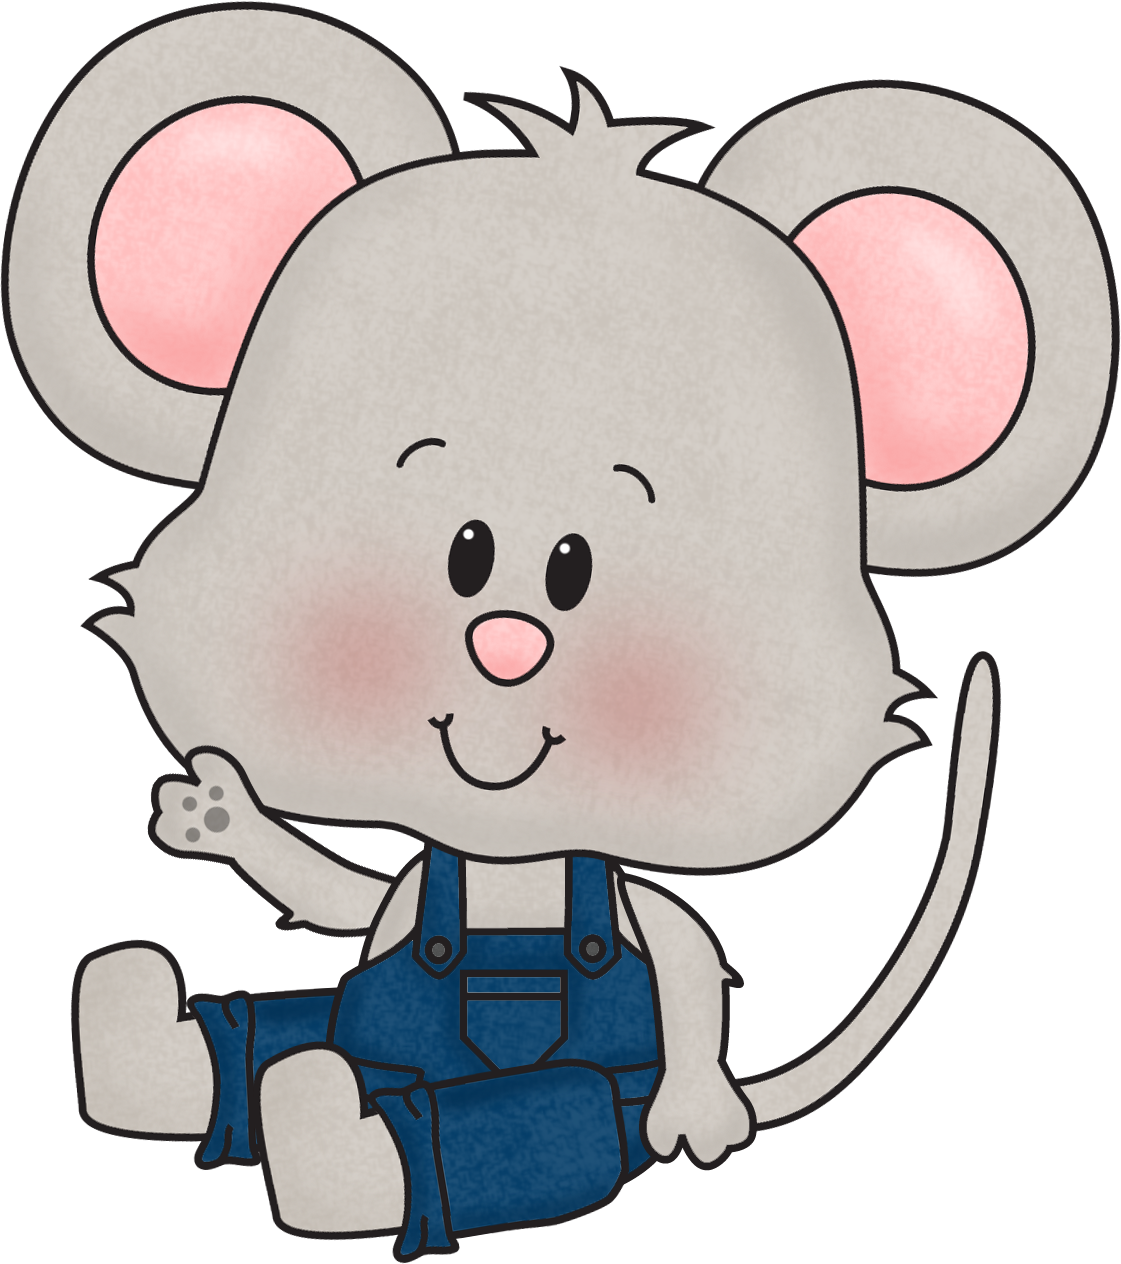 Free Church Mouse Cliparts, Download Free Clip Art, Free.